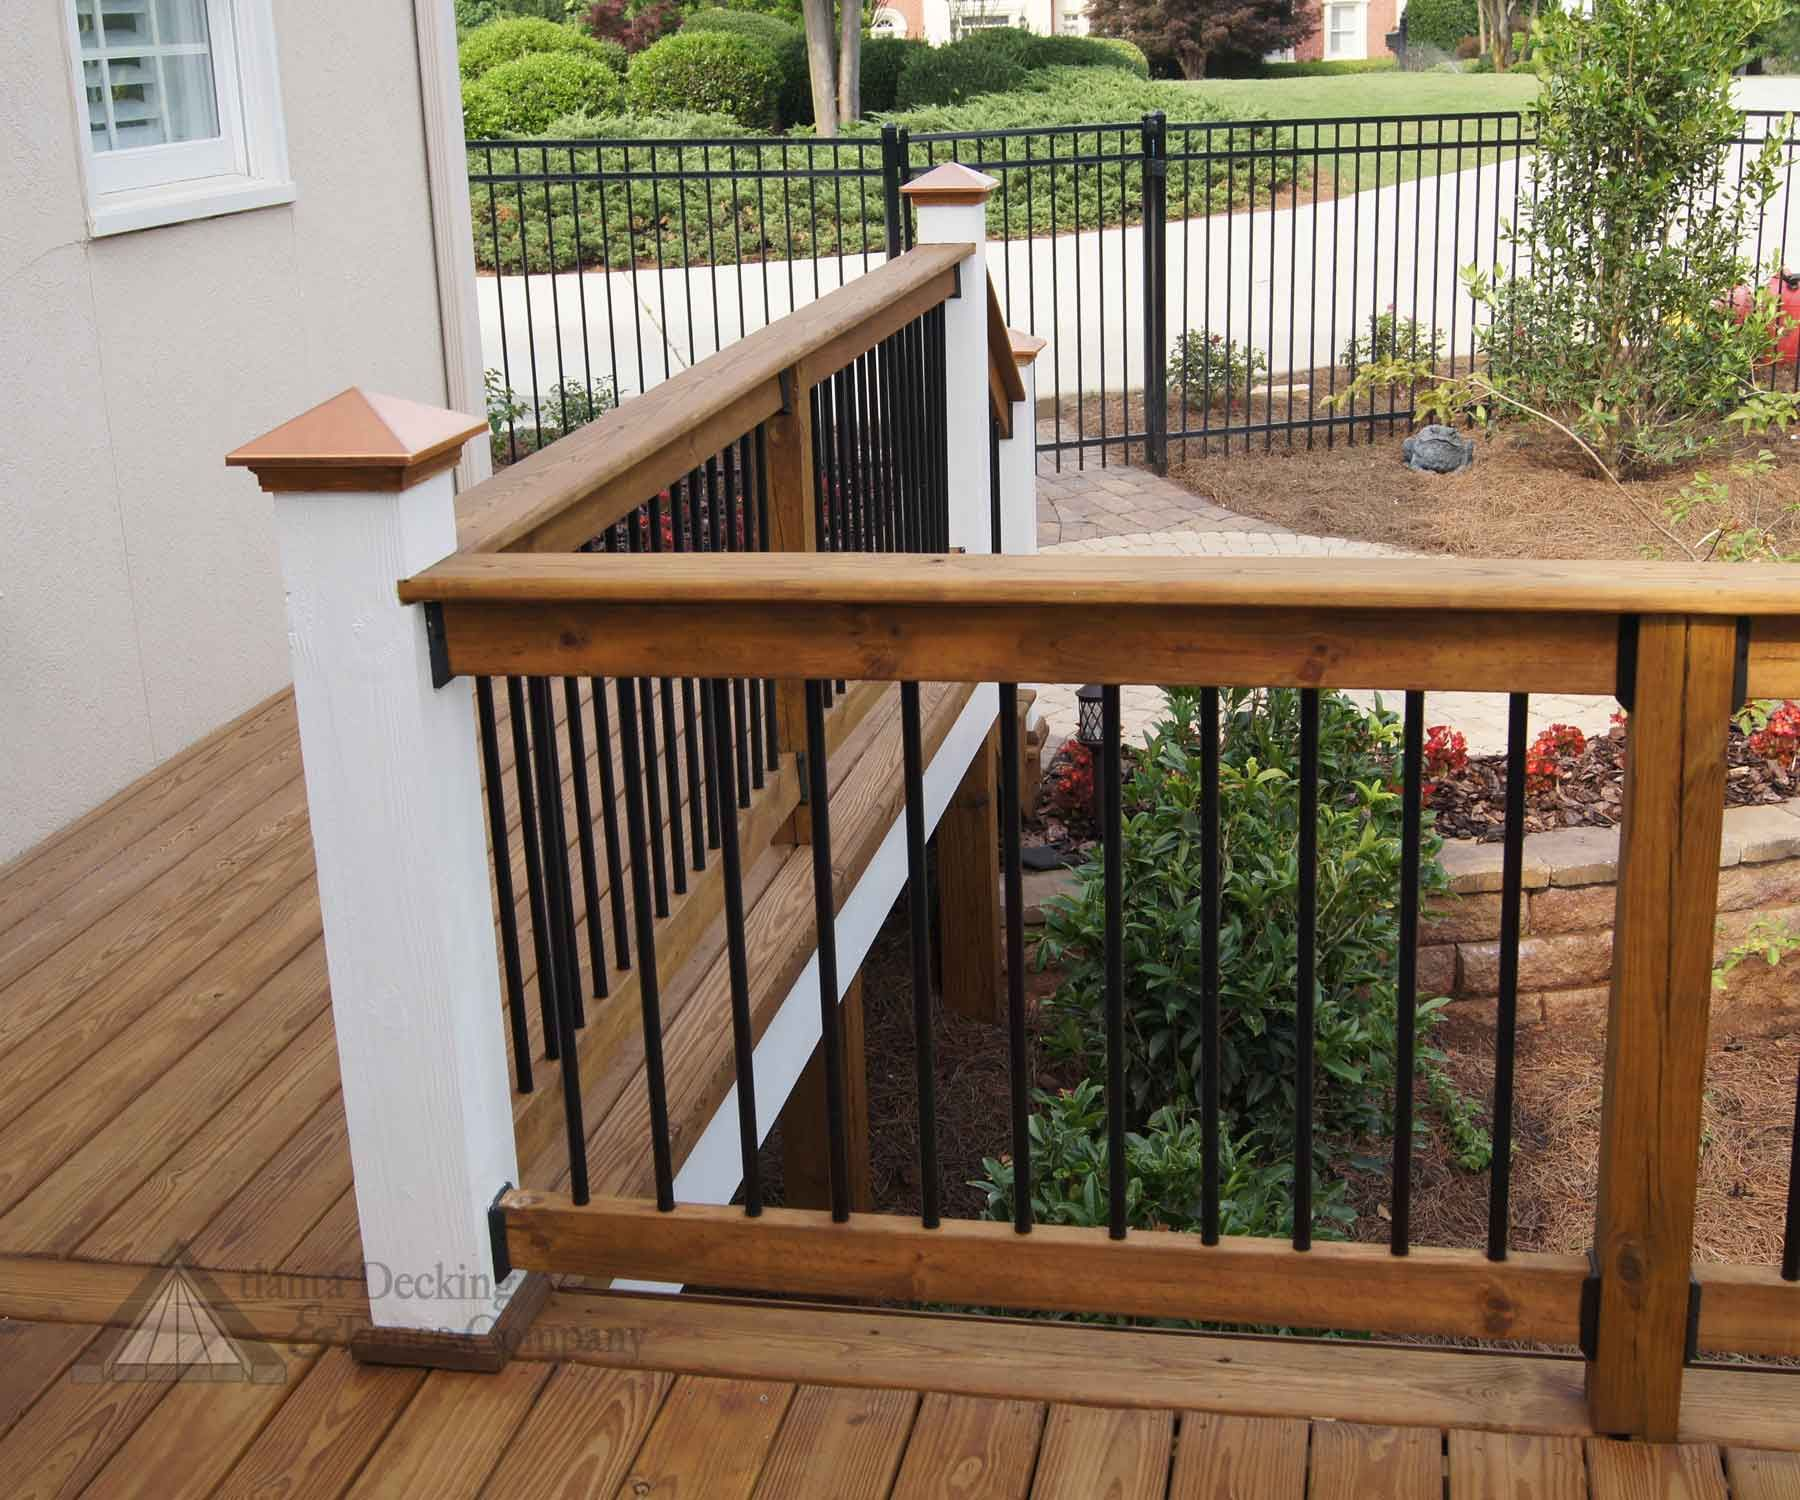 Exterior Wood Handrail Build Wooden Exterior Stair Railings http